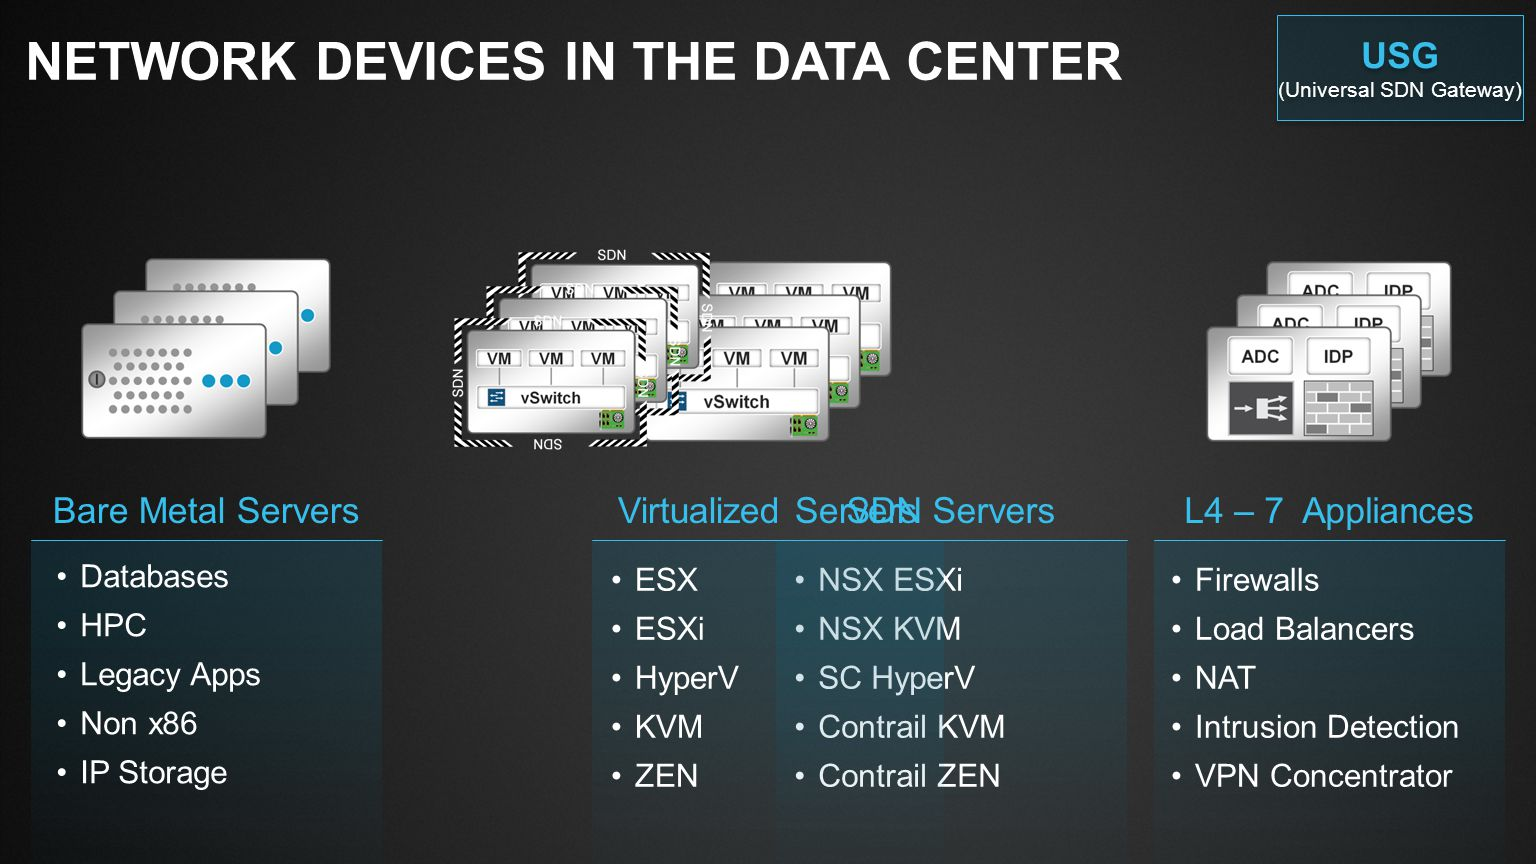 Slide Type Juniper Networks Large Venue Template / 16x9 / V6 Blank SlideTitle and Content 1-Line USG (UNIVERSAL SDN GATEWAY) Introducing four new options for SDN enablement Provide SDN-to-non-SDN translation, same IP subnet SDN to IP (Layer 2) Layer2 USG Remote Data Center Branch Offices Internet Layer3 USG Provide SDN-to-non-SDN translation, different IP subnet SDN to IP (Layer 3) Provide SDN-to-SDN translation, same or different IP subnet, same or different overlay SDN USG SDN to SDN WAN USG Provide SDN-to-WAN translation, same or different IP subnet, same or different encapsulation SDN to WAN USG (Universal SDN Gateway) USG (Universal SDN Gateway)